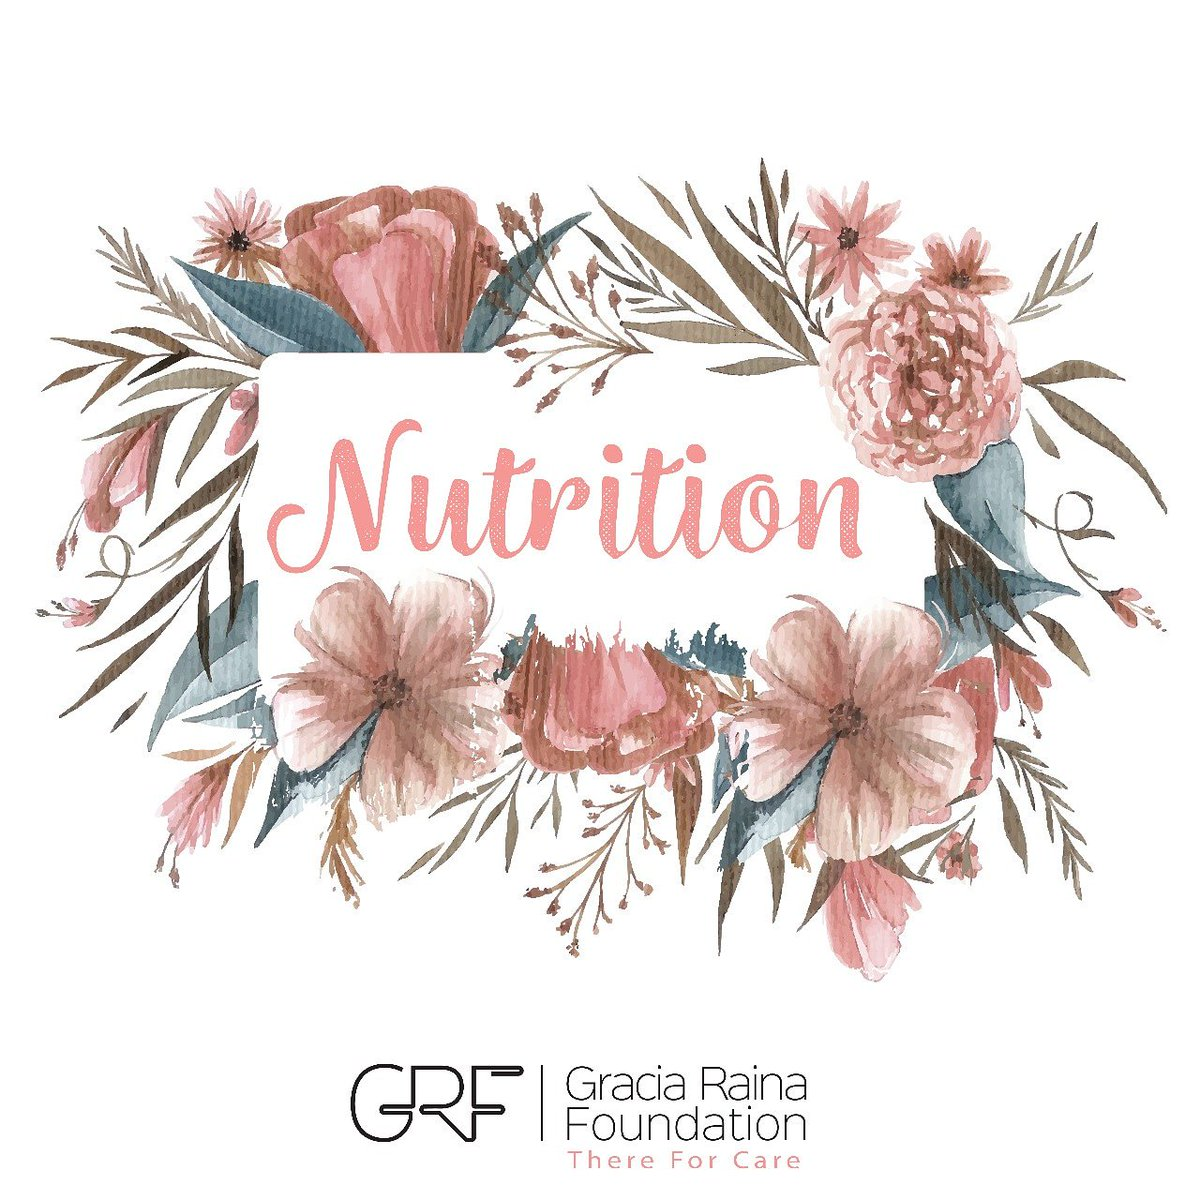 Nutrition during pregnancy and in the first years of a child's life provides the essential building blocks for brain development, healthy growth and a strong immune system #nutrition #pregnancy